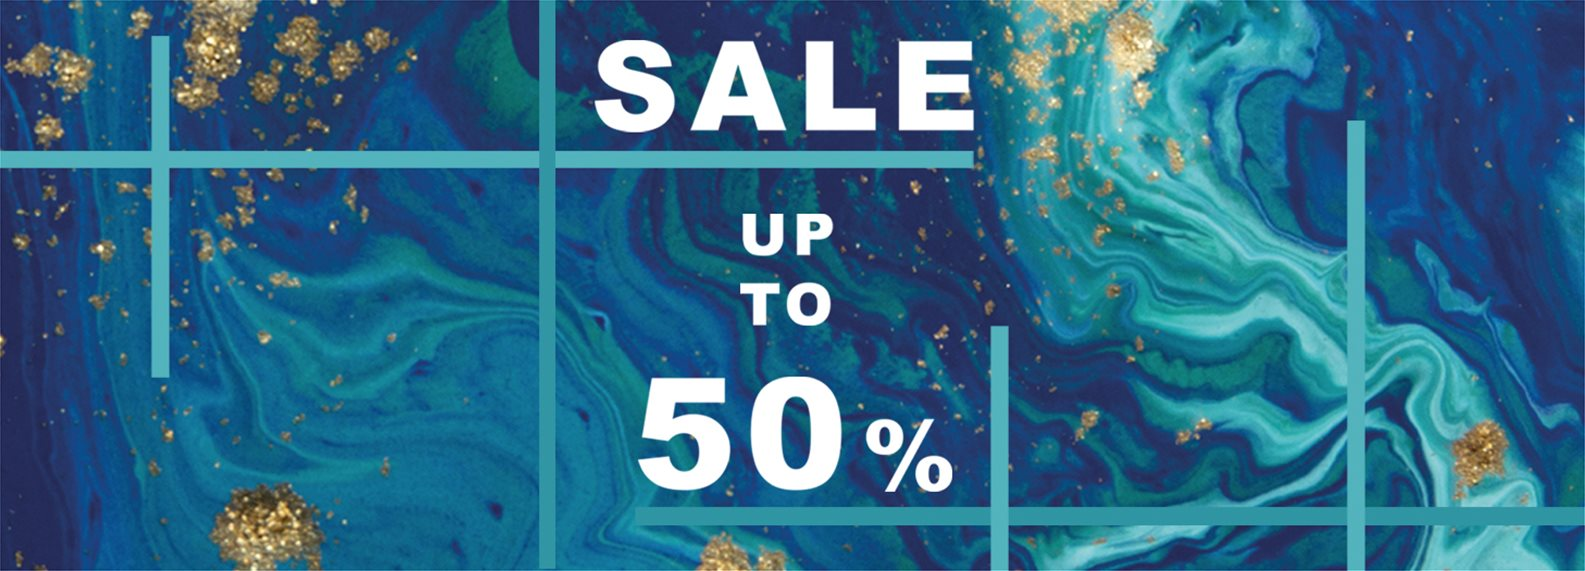 SUMMER SALE UP TO 50%! image